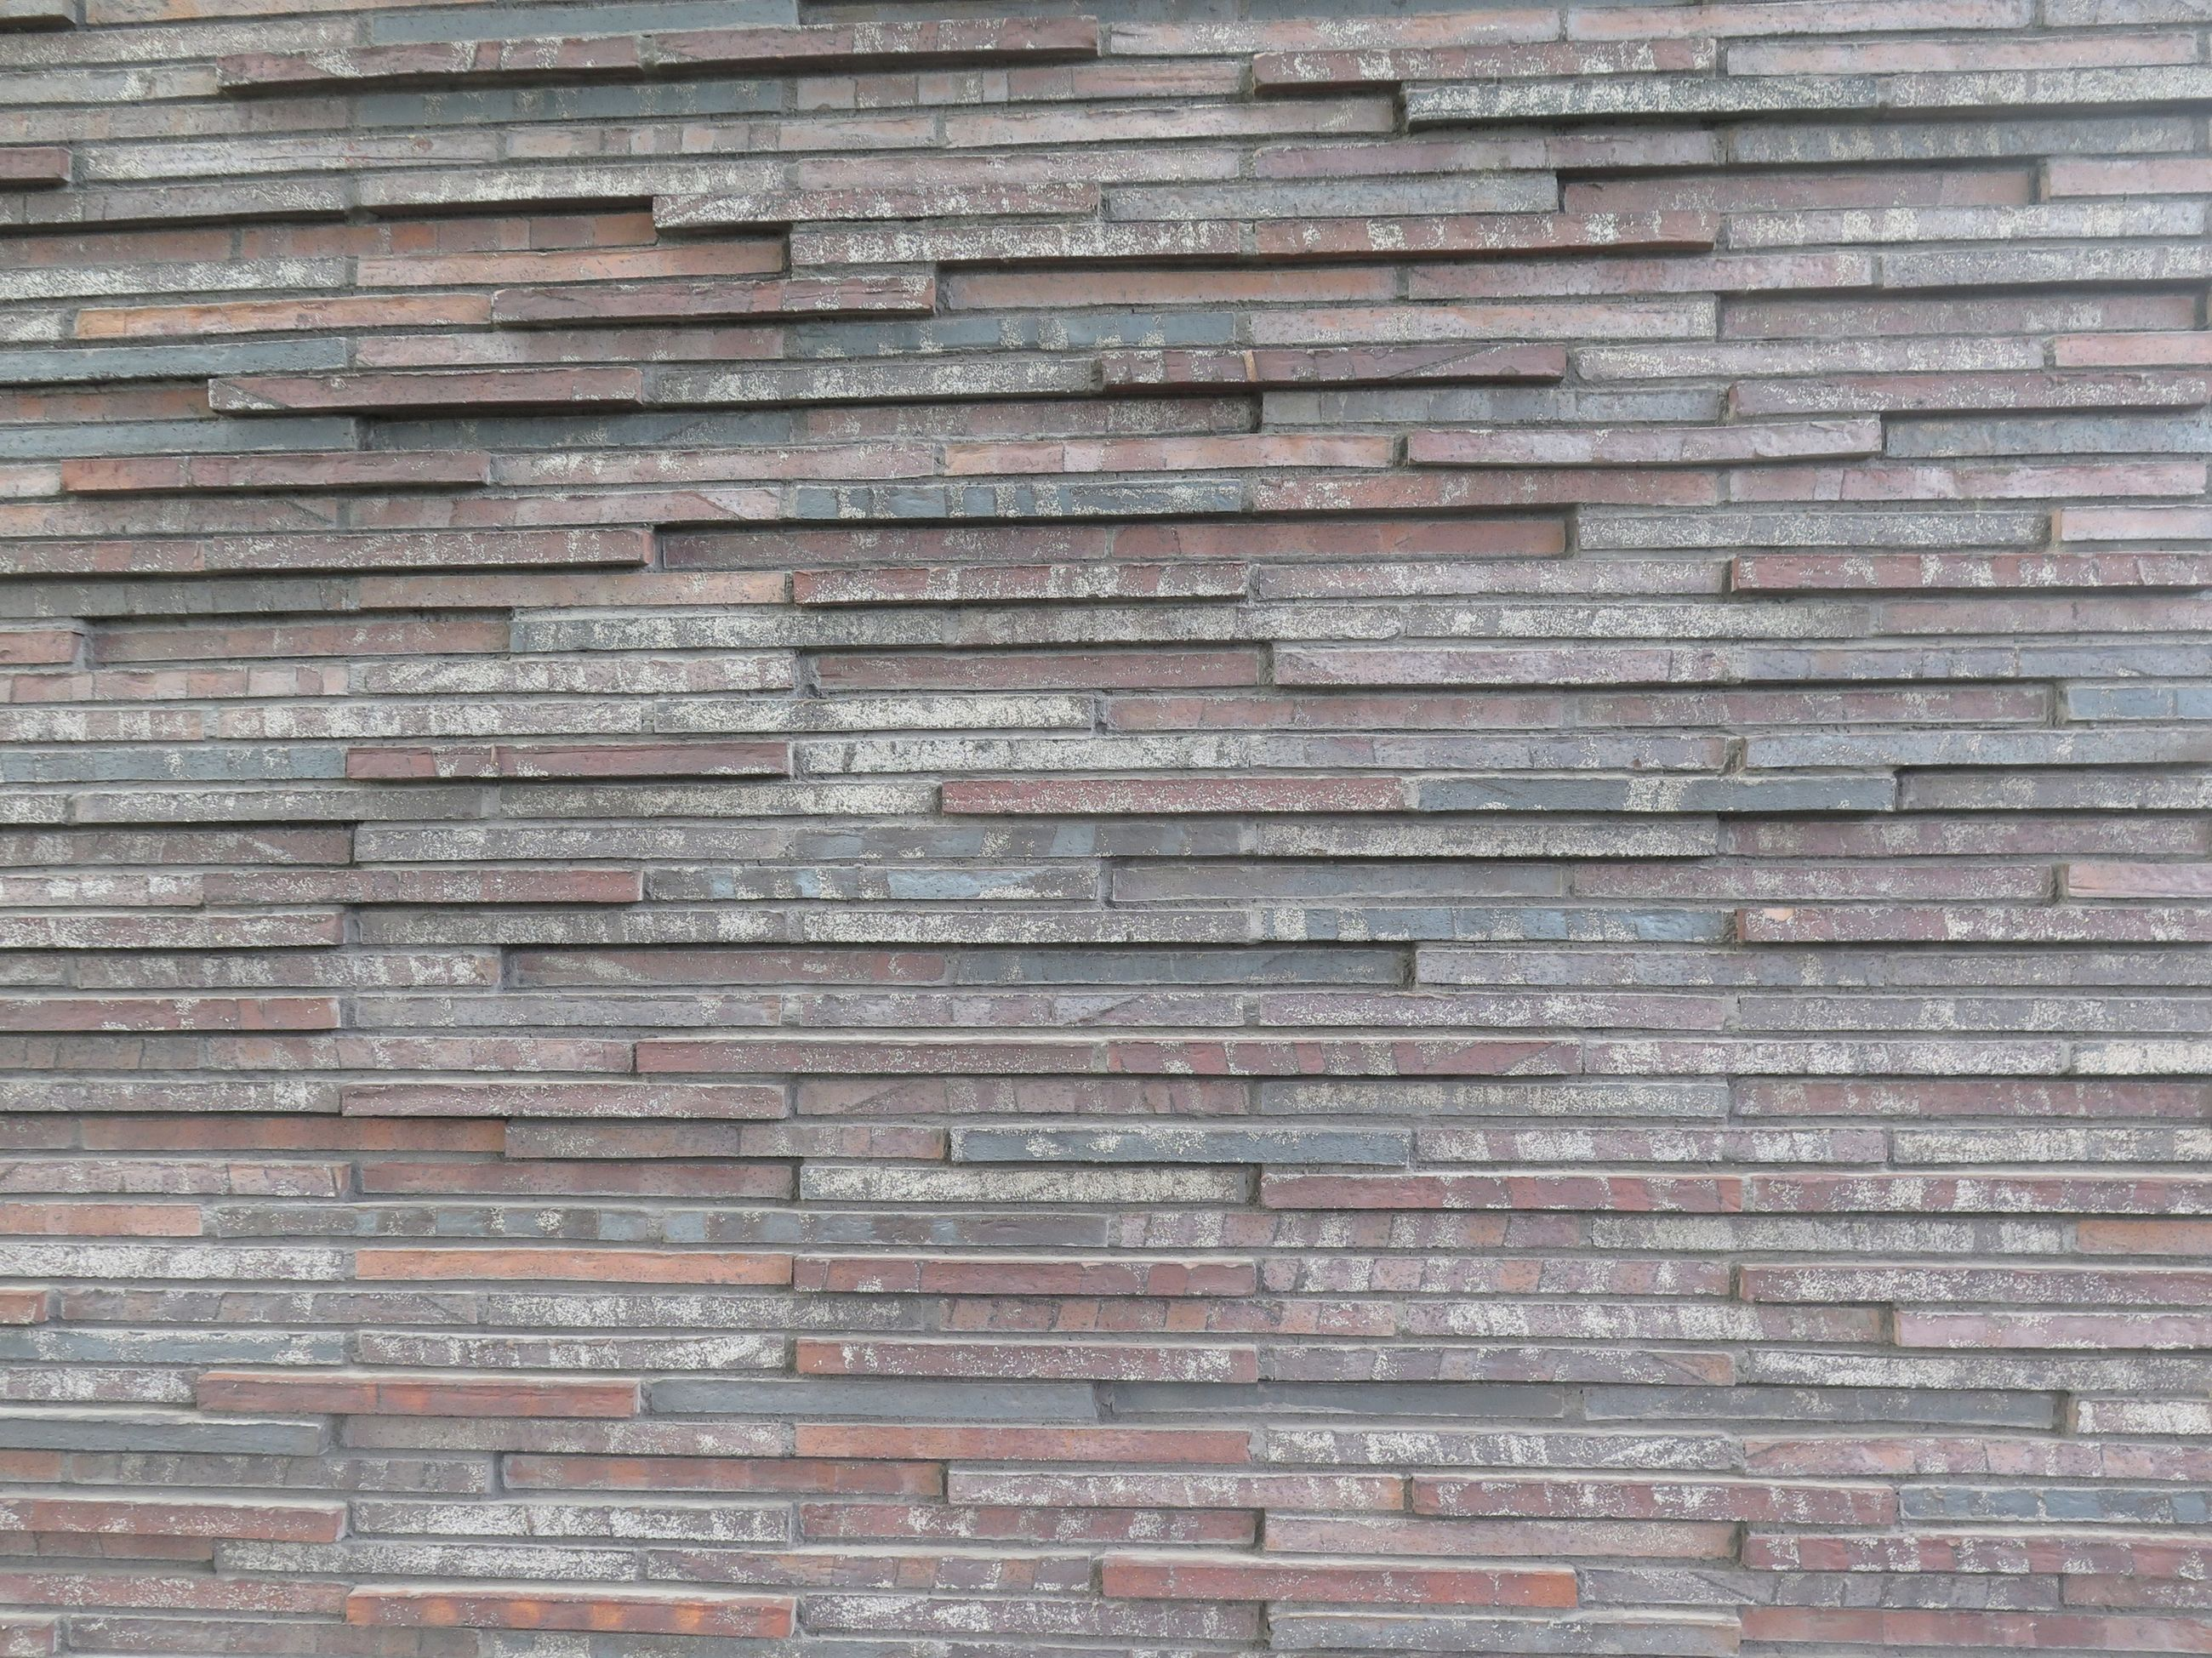 brick wall, built structure, architecture, full frame, building exterior, wall - building feature, backgrounds, textured, weathered, pattern, wall, old, brick, close-up, outdoors, wood - material, red, day, no people, closed